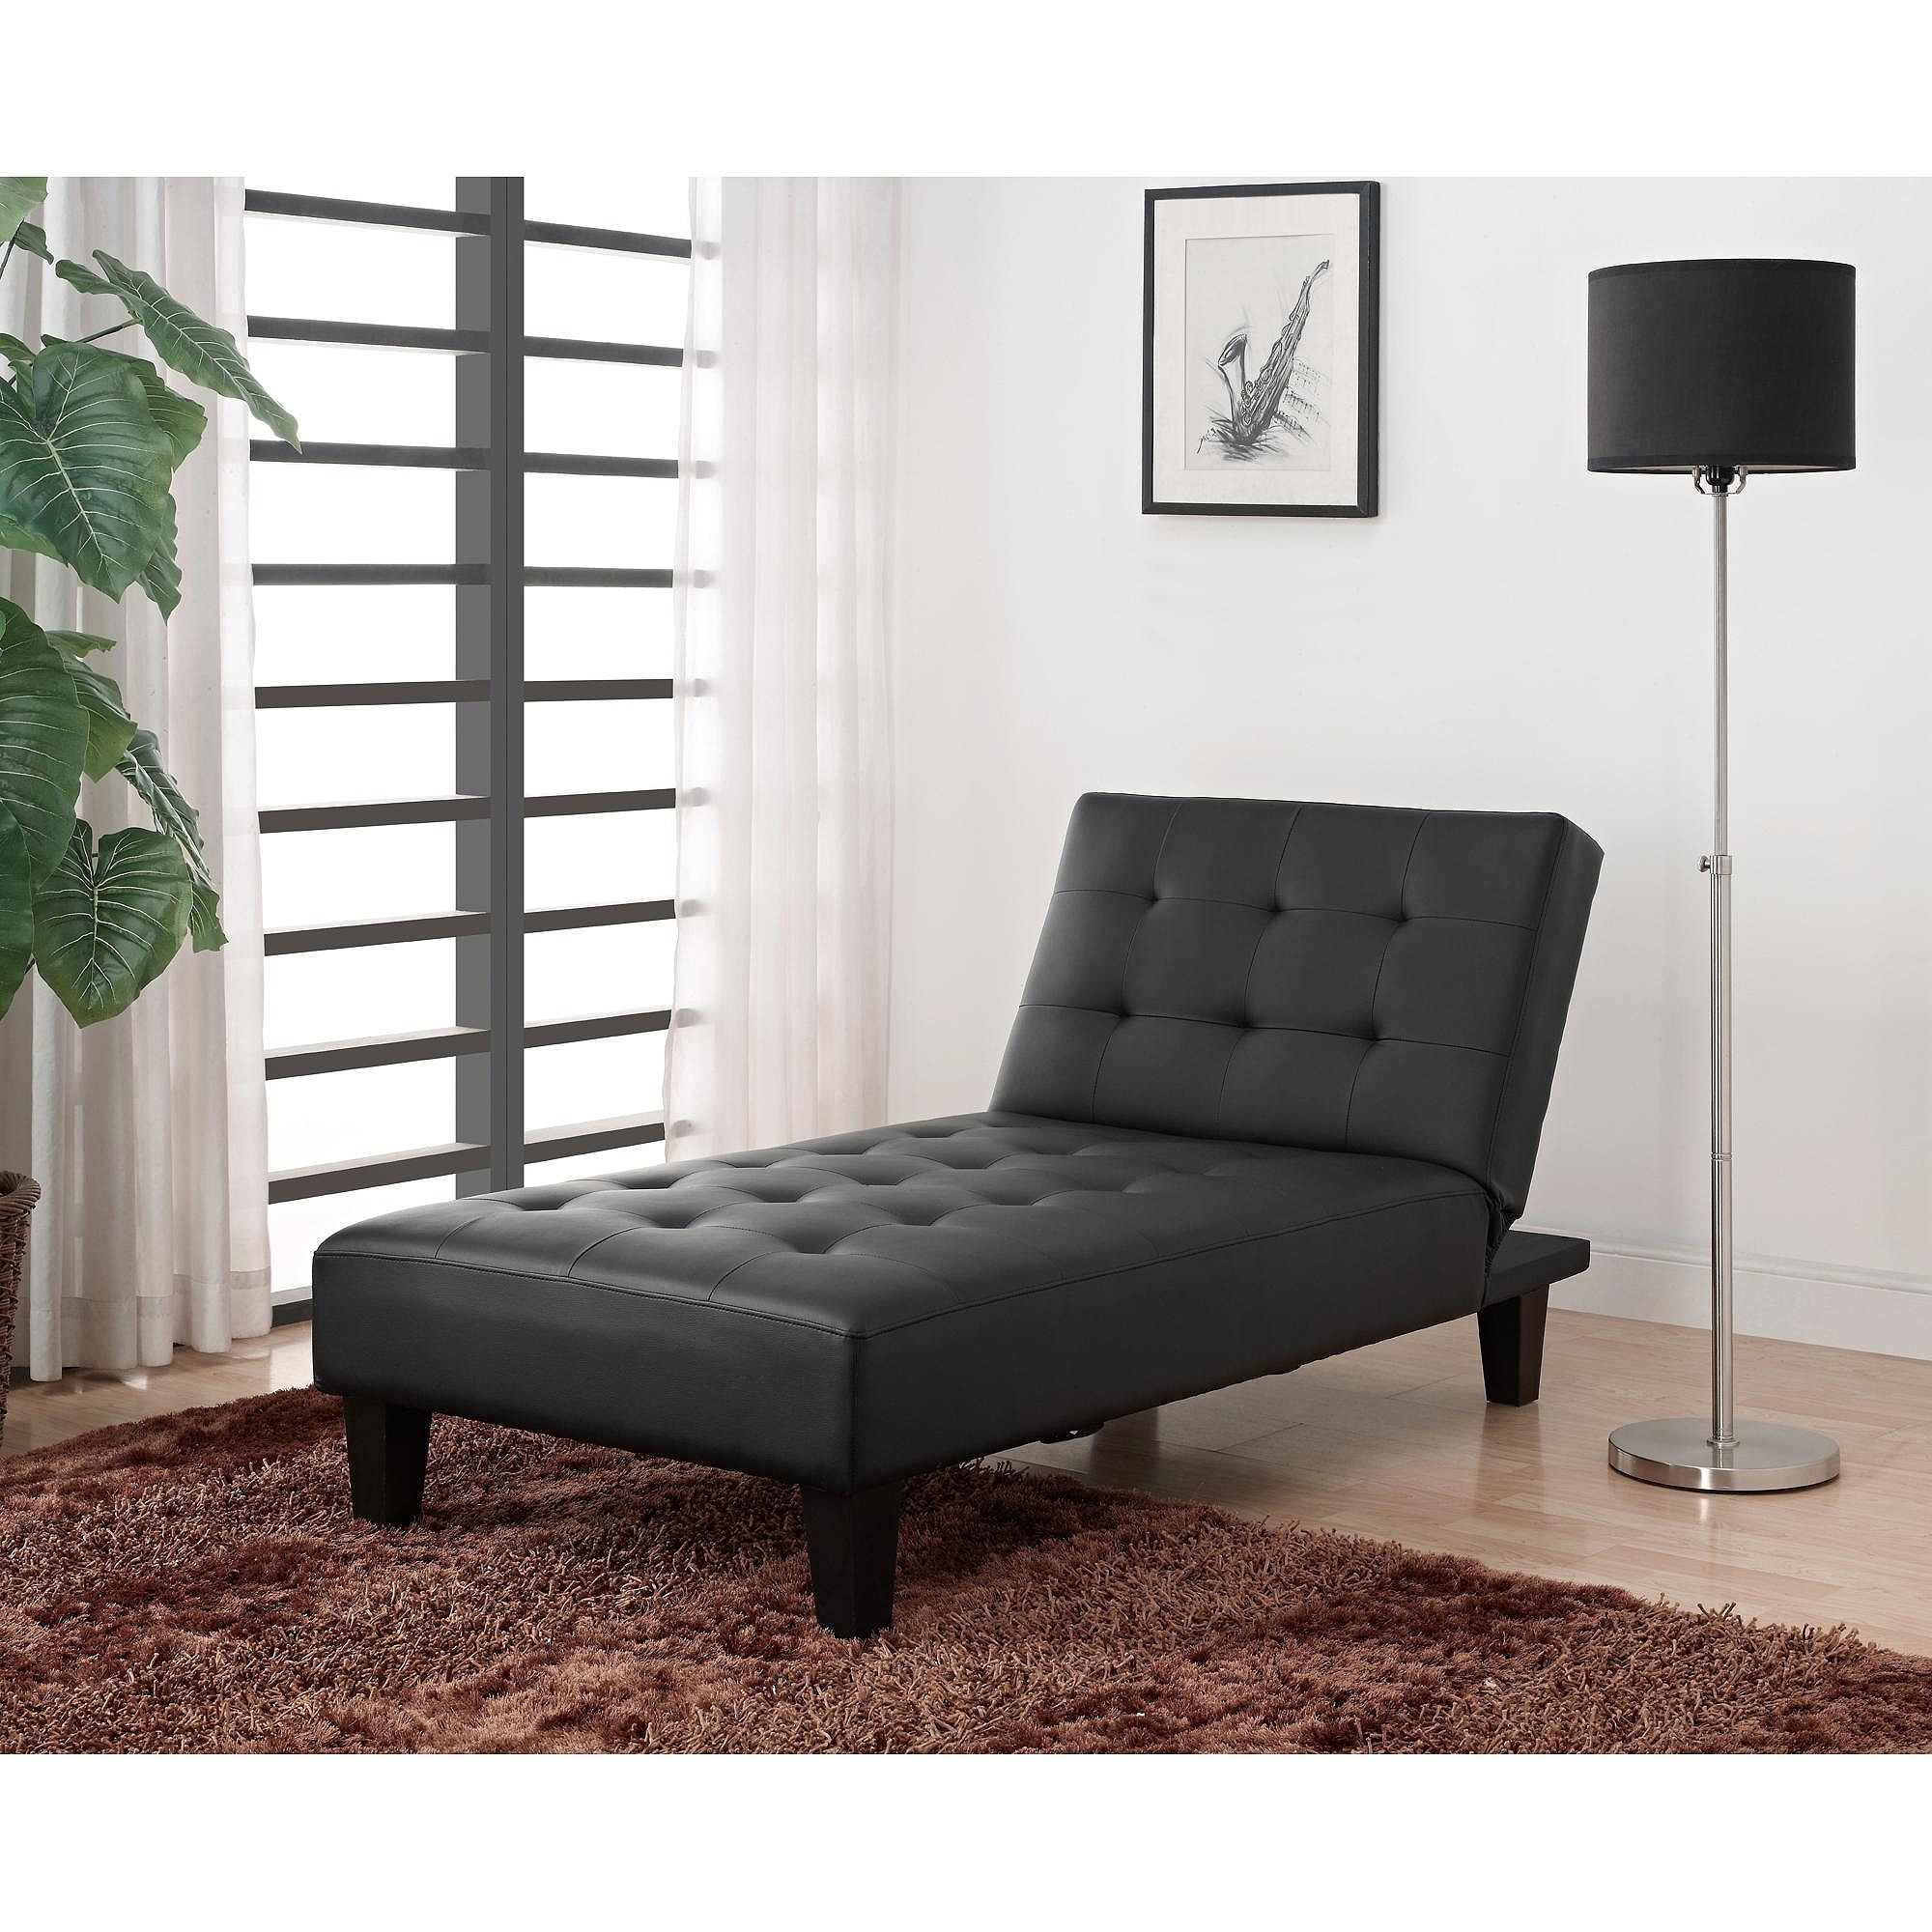 Julia Futon Chaise Lounger, Black – Walmart With 2018 Walmart Chaises (Gallery 5 of 15)